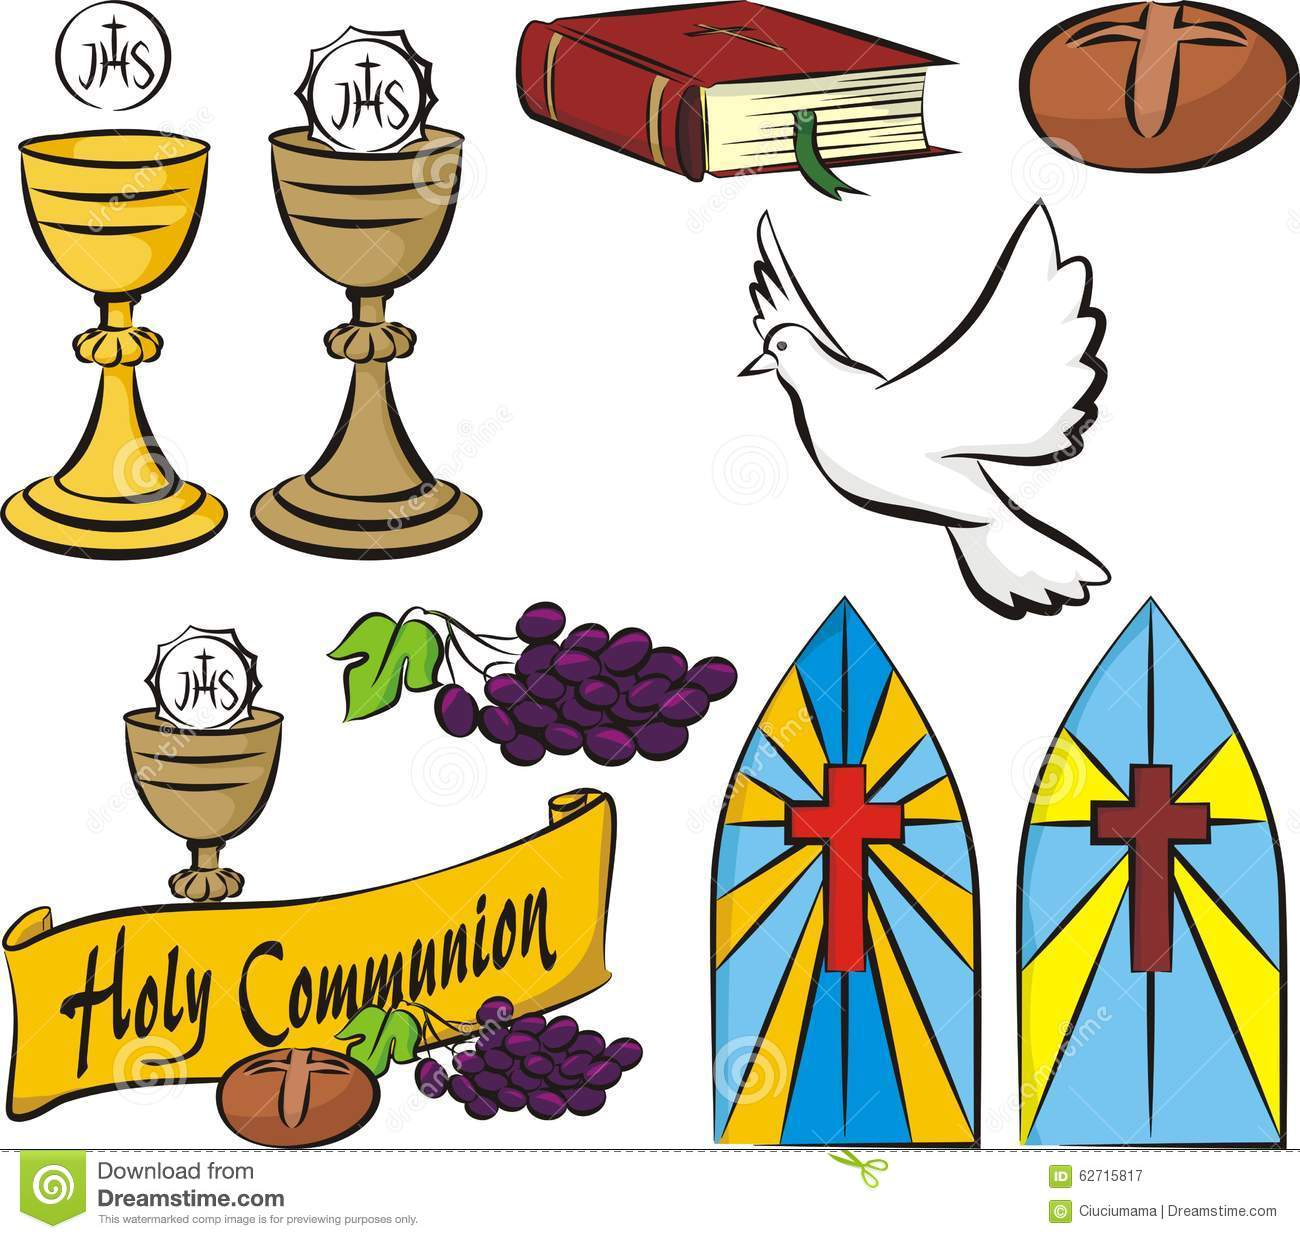 Holy communion vector symbols stock vector illustration of holy communion vector symbols buycottarizona Image collections